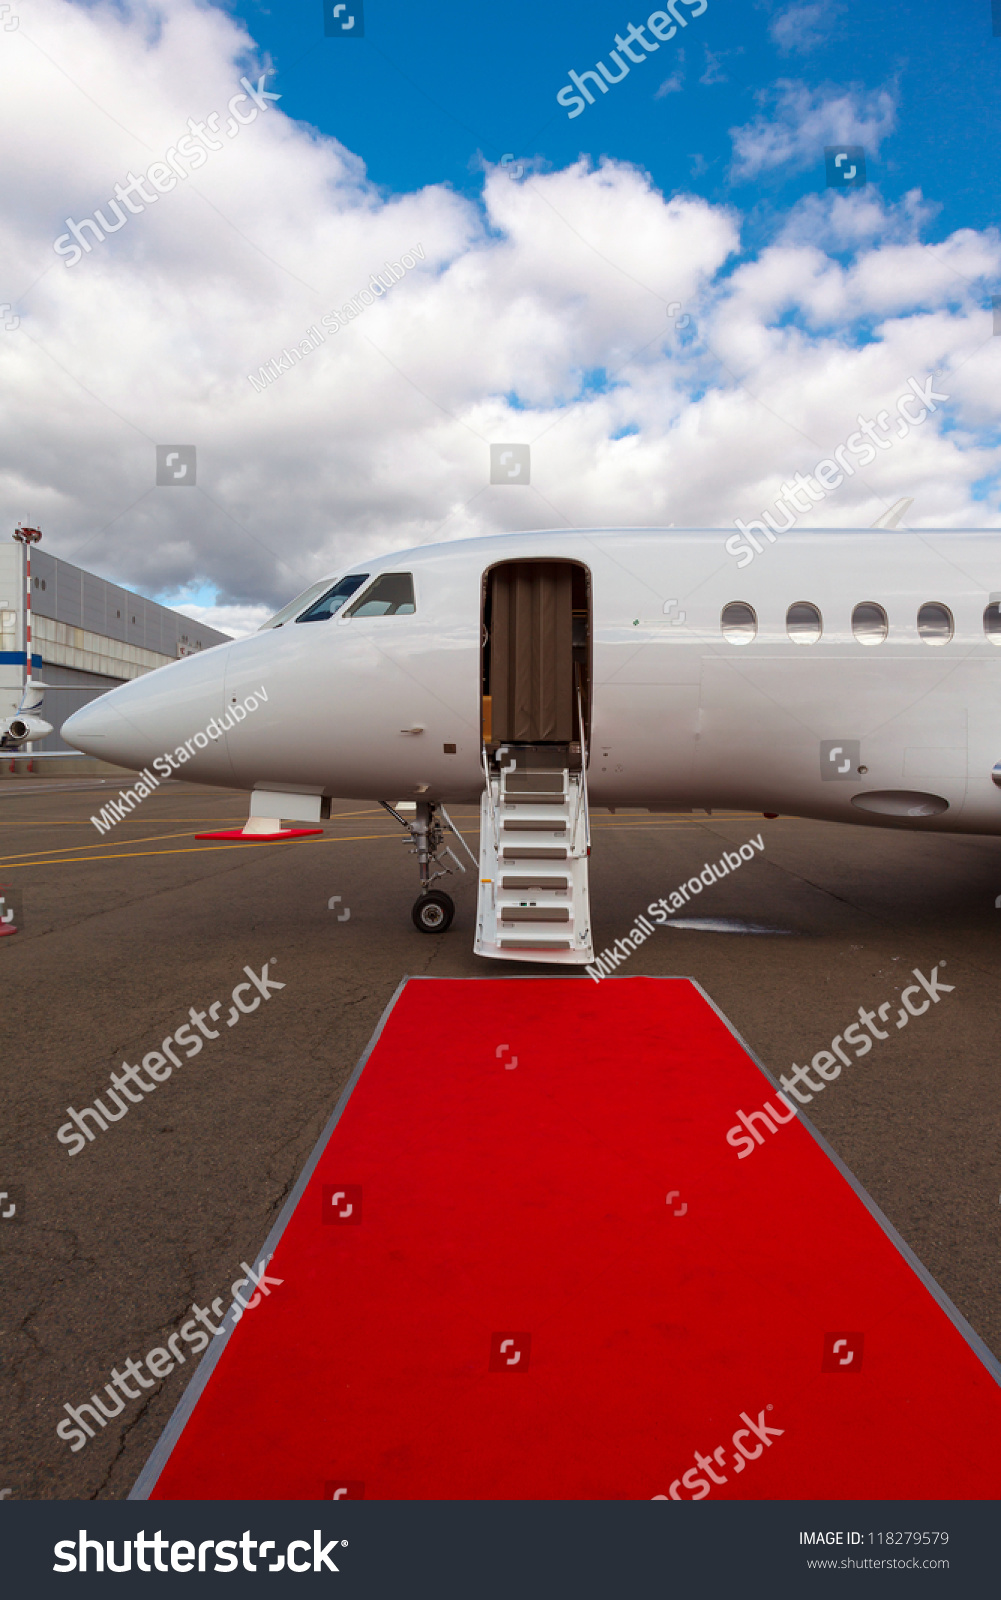 White Private Jet And Open Ladder Red Carpet At Airport Background Blue Sky